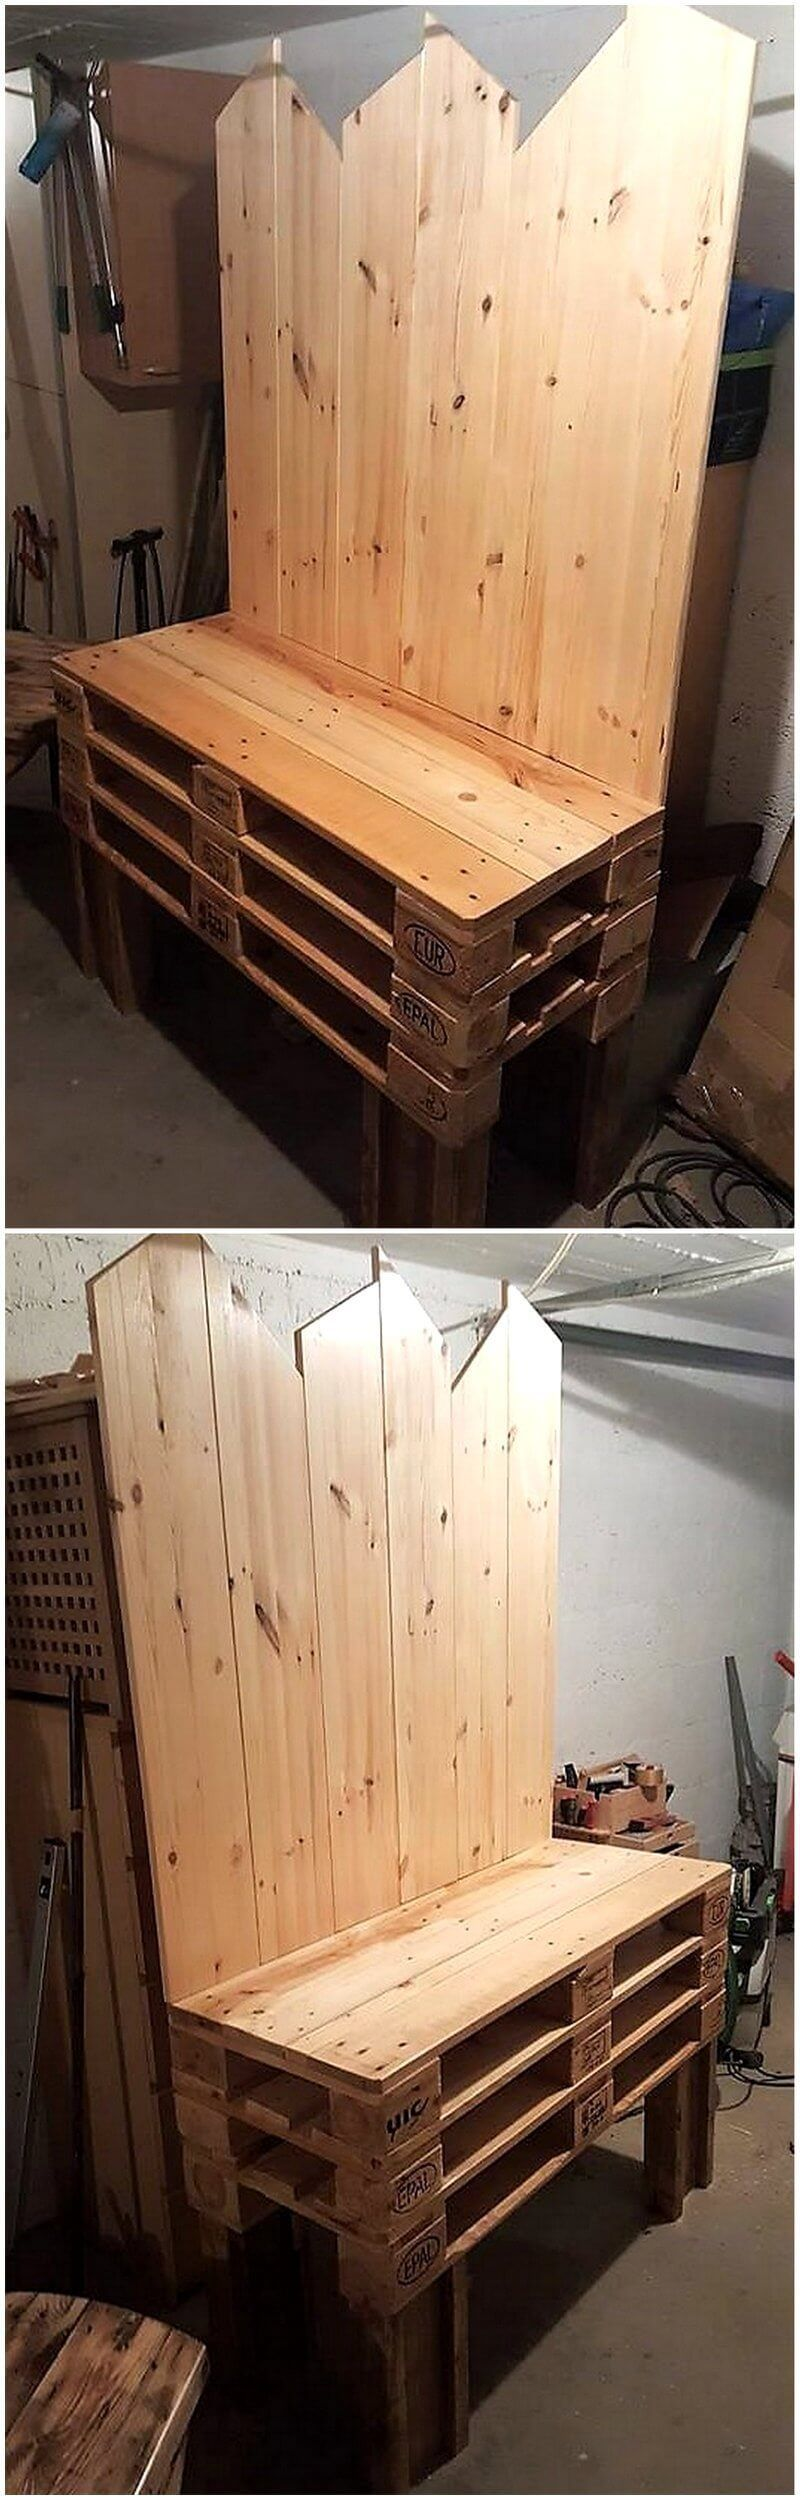 Ingenious Ideas to Reuse Shipping Wood Pallet #oldpalletsforcrafting